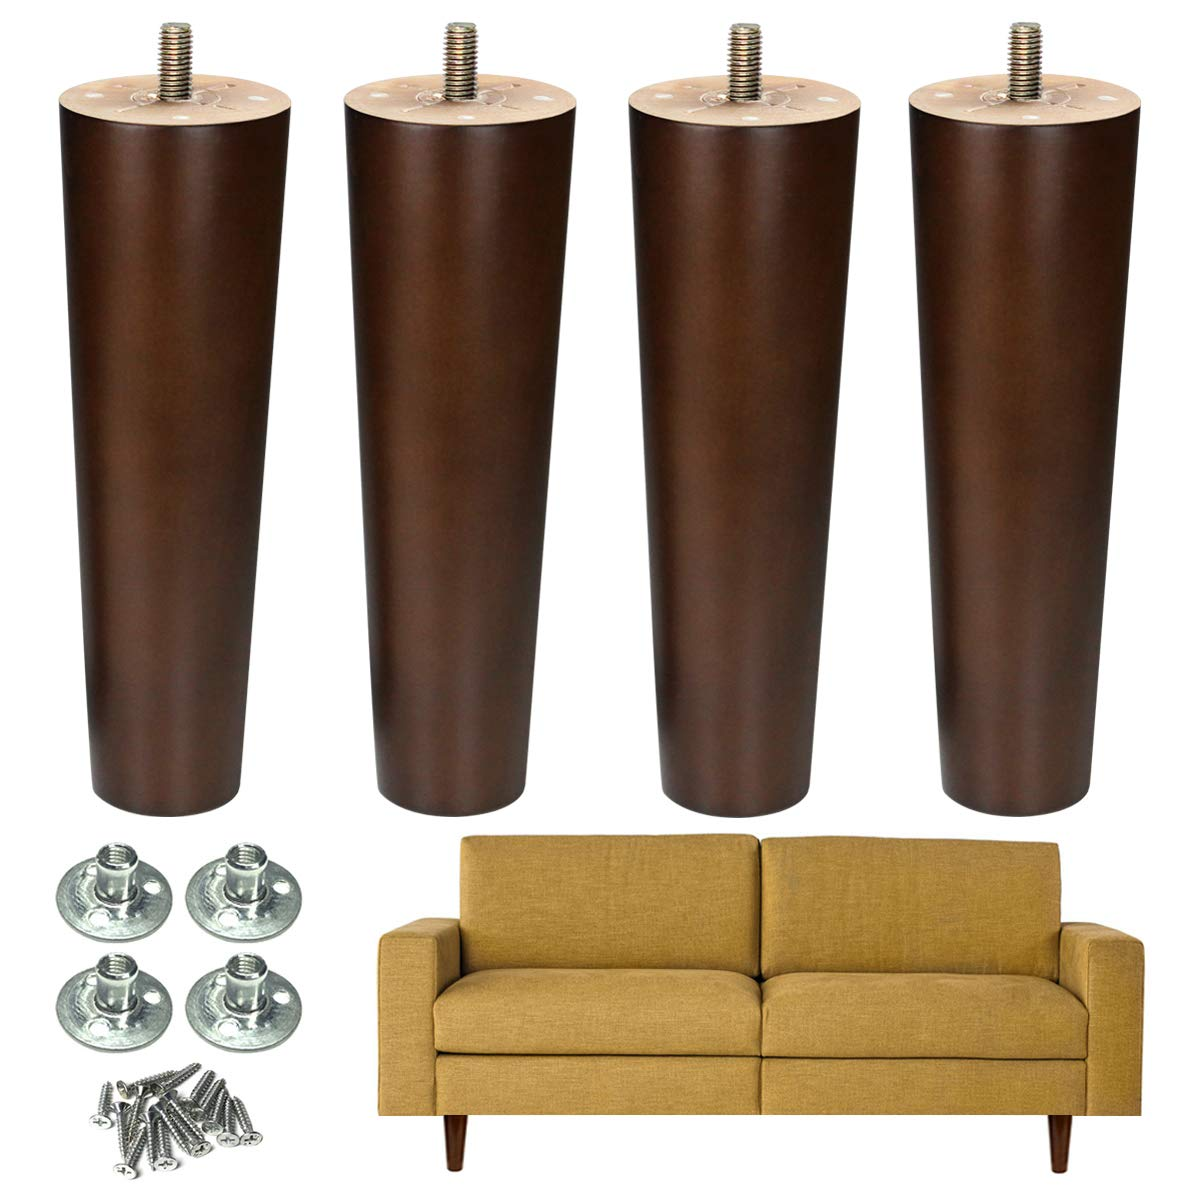 Furniture Leg Sofa Legs Wood 8 inch Midcentury Walnut Color Chair Legs Replacement 5/16 inch Bolt Set of 4 by AORYVIC